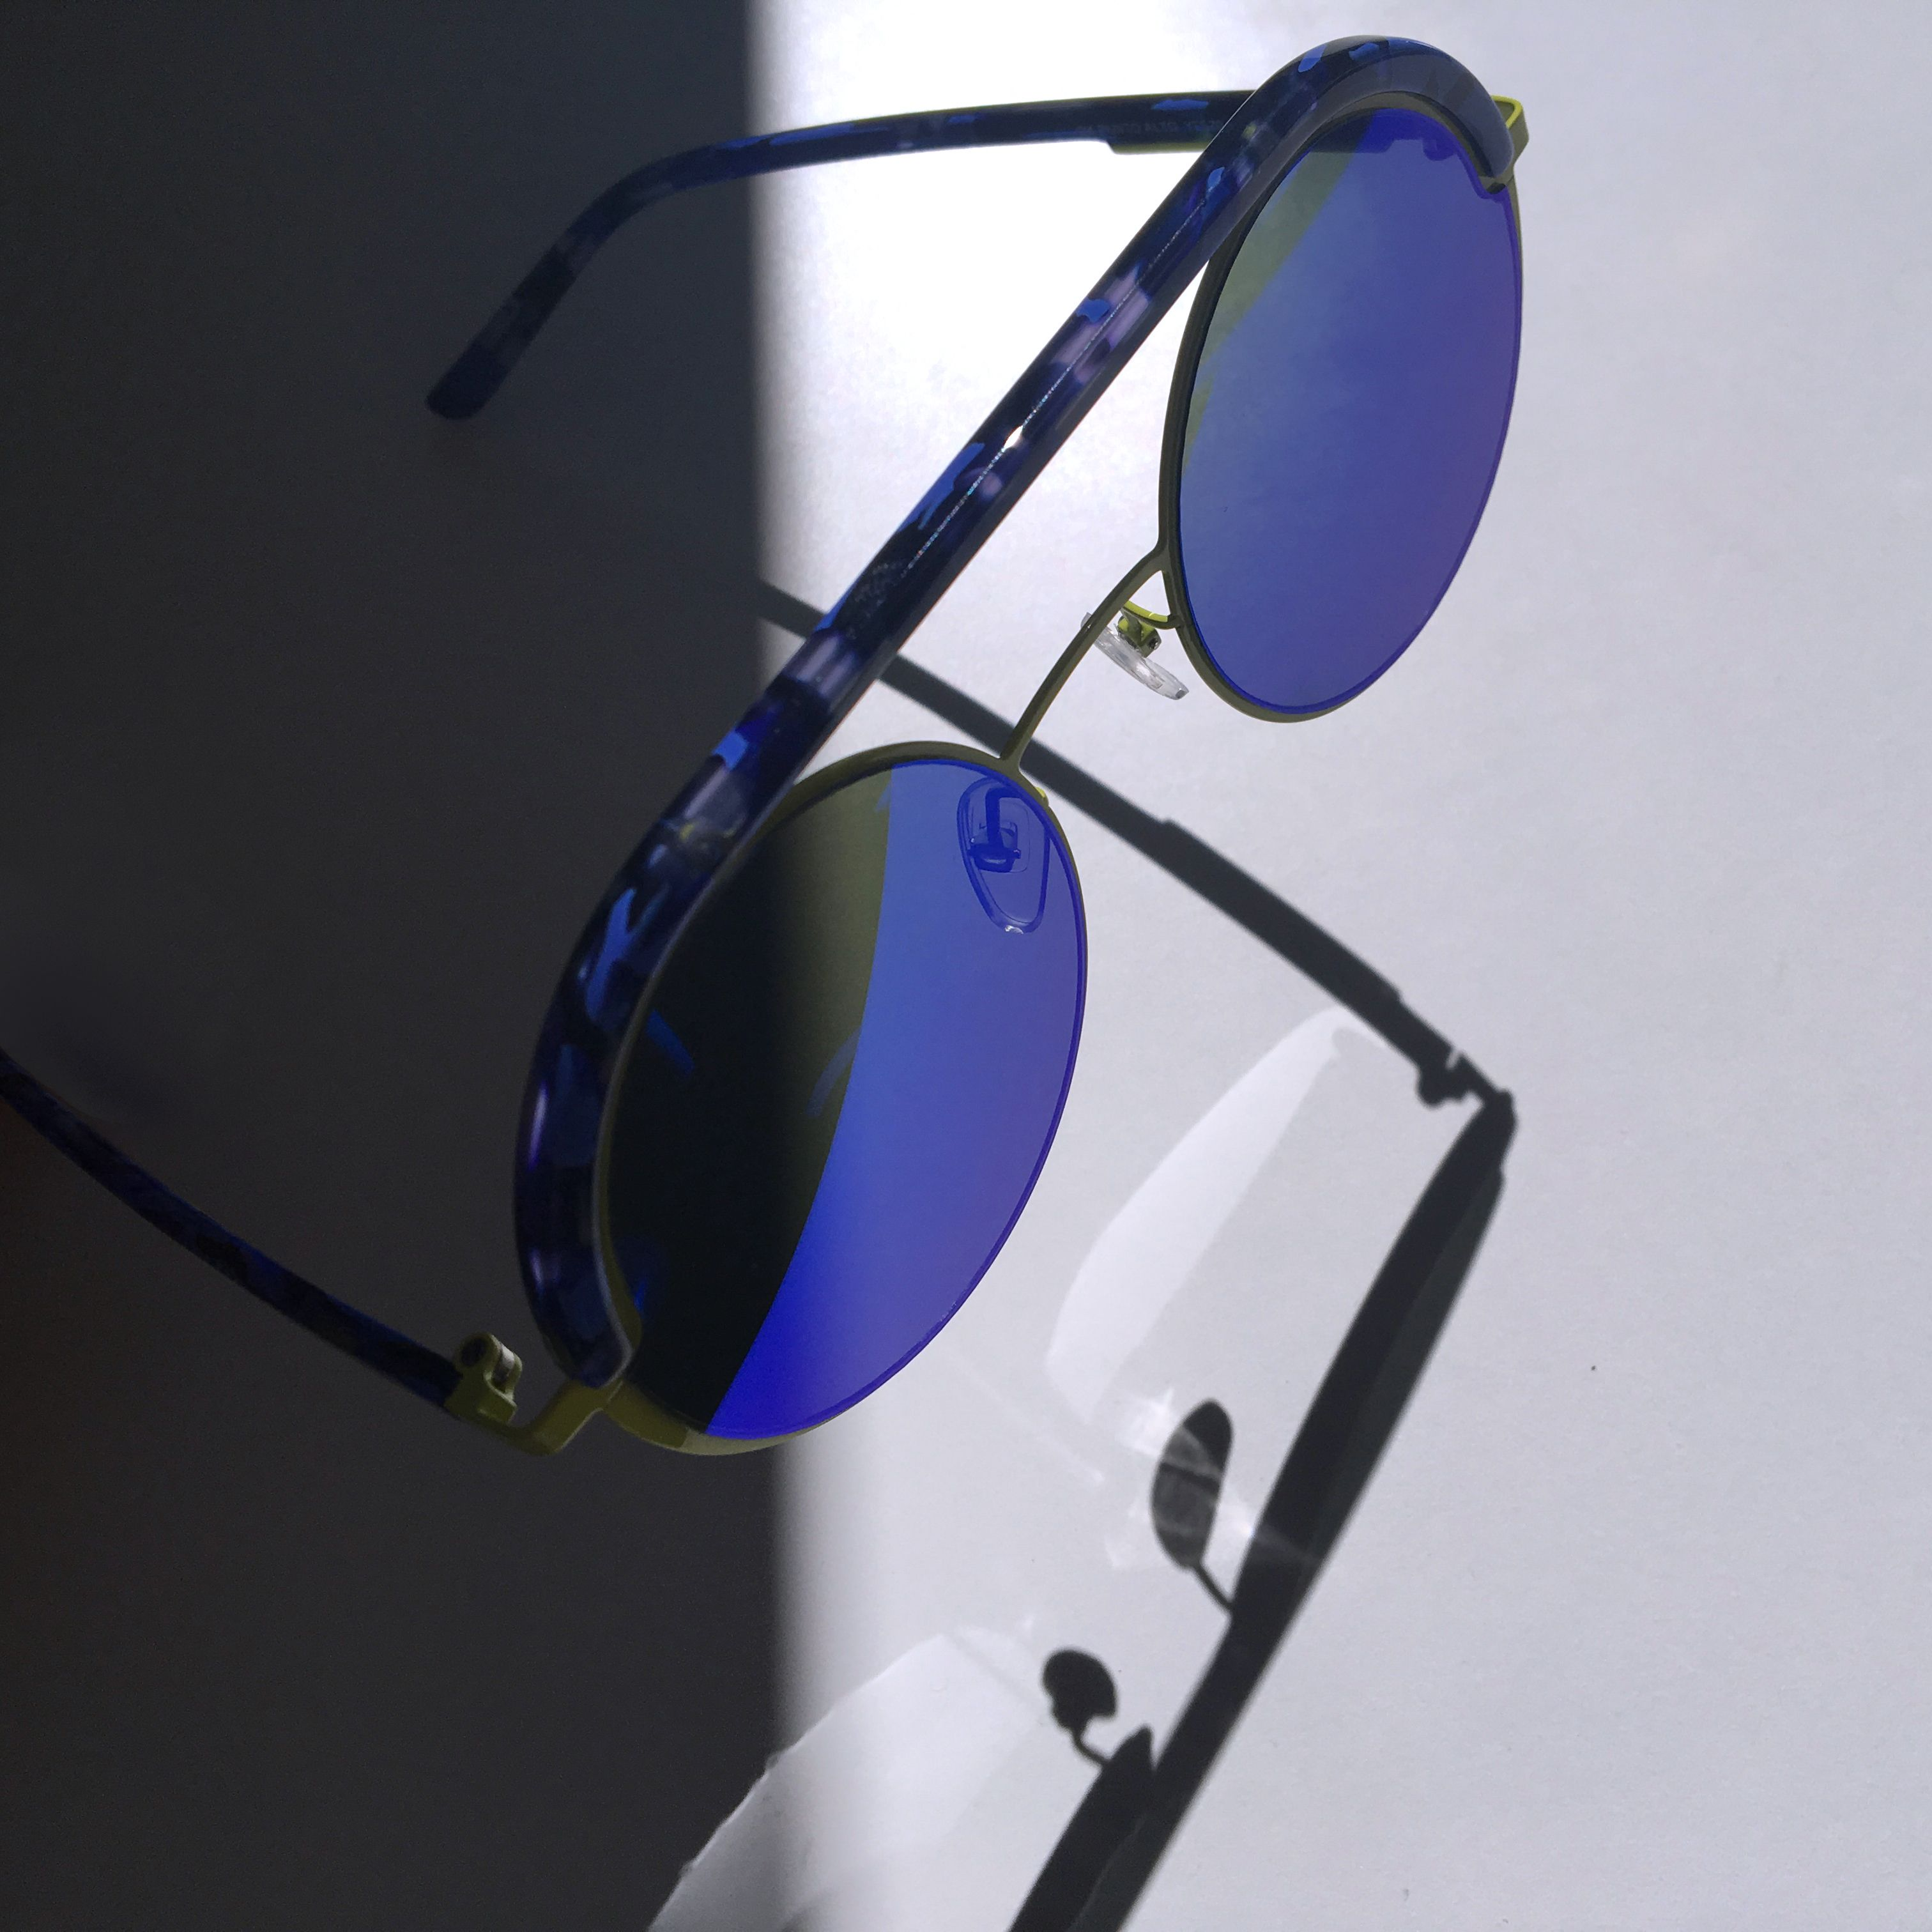 Meet The Flat-Lense: The New Sunglasses You'll Be Seeing